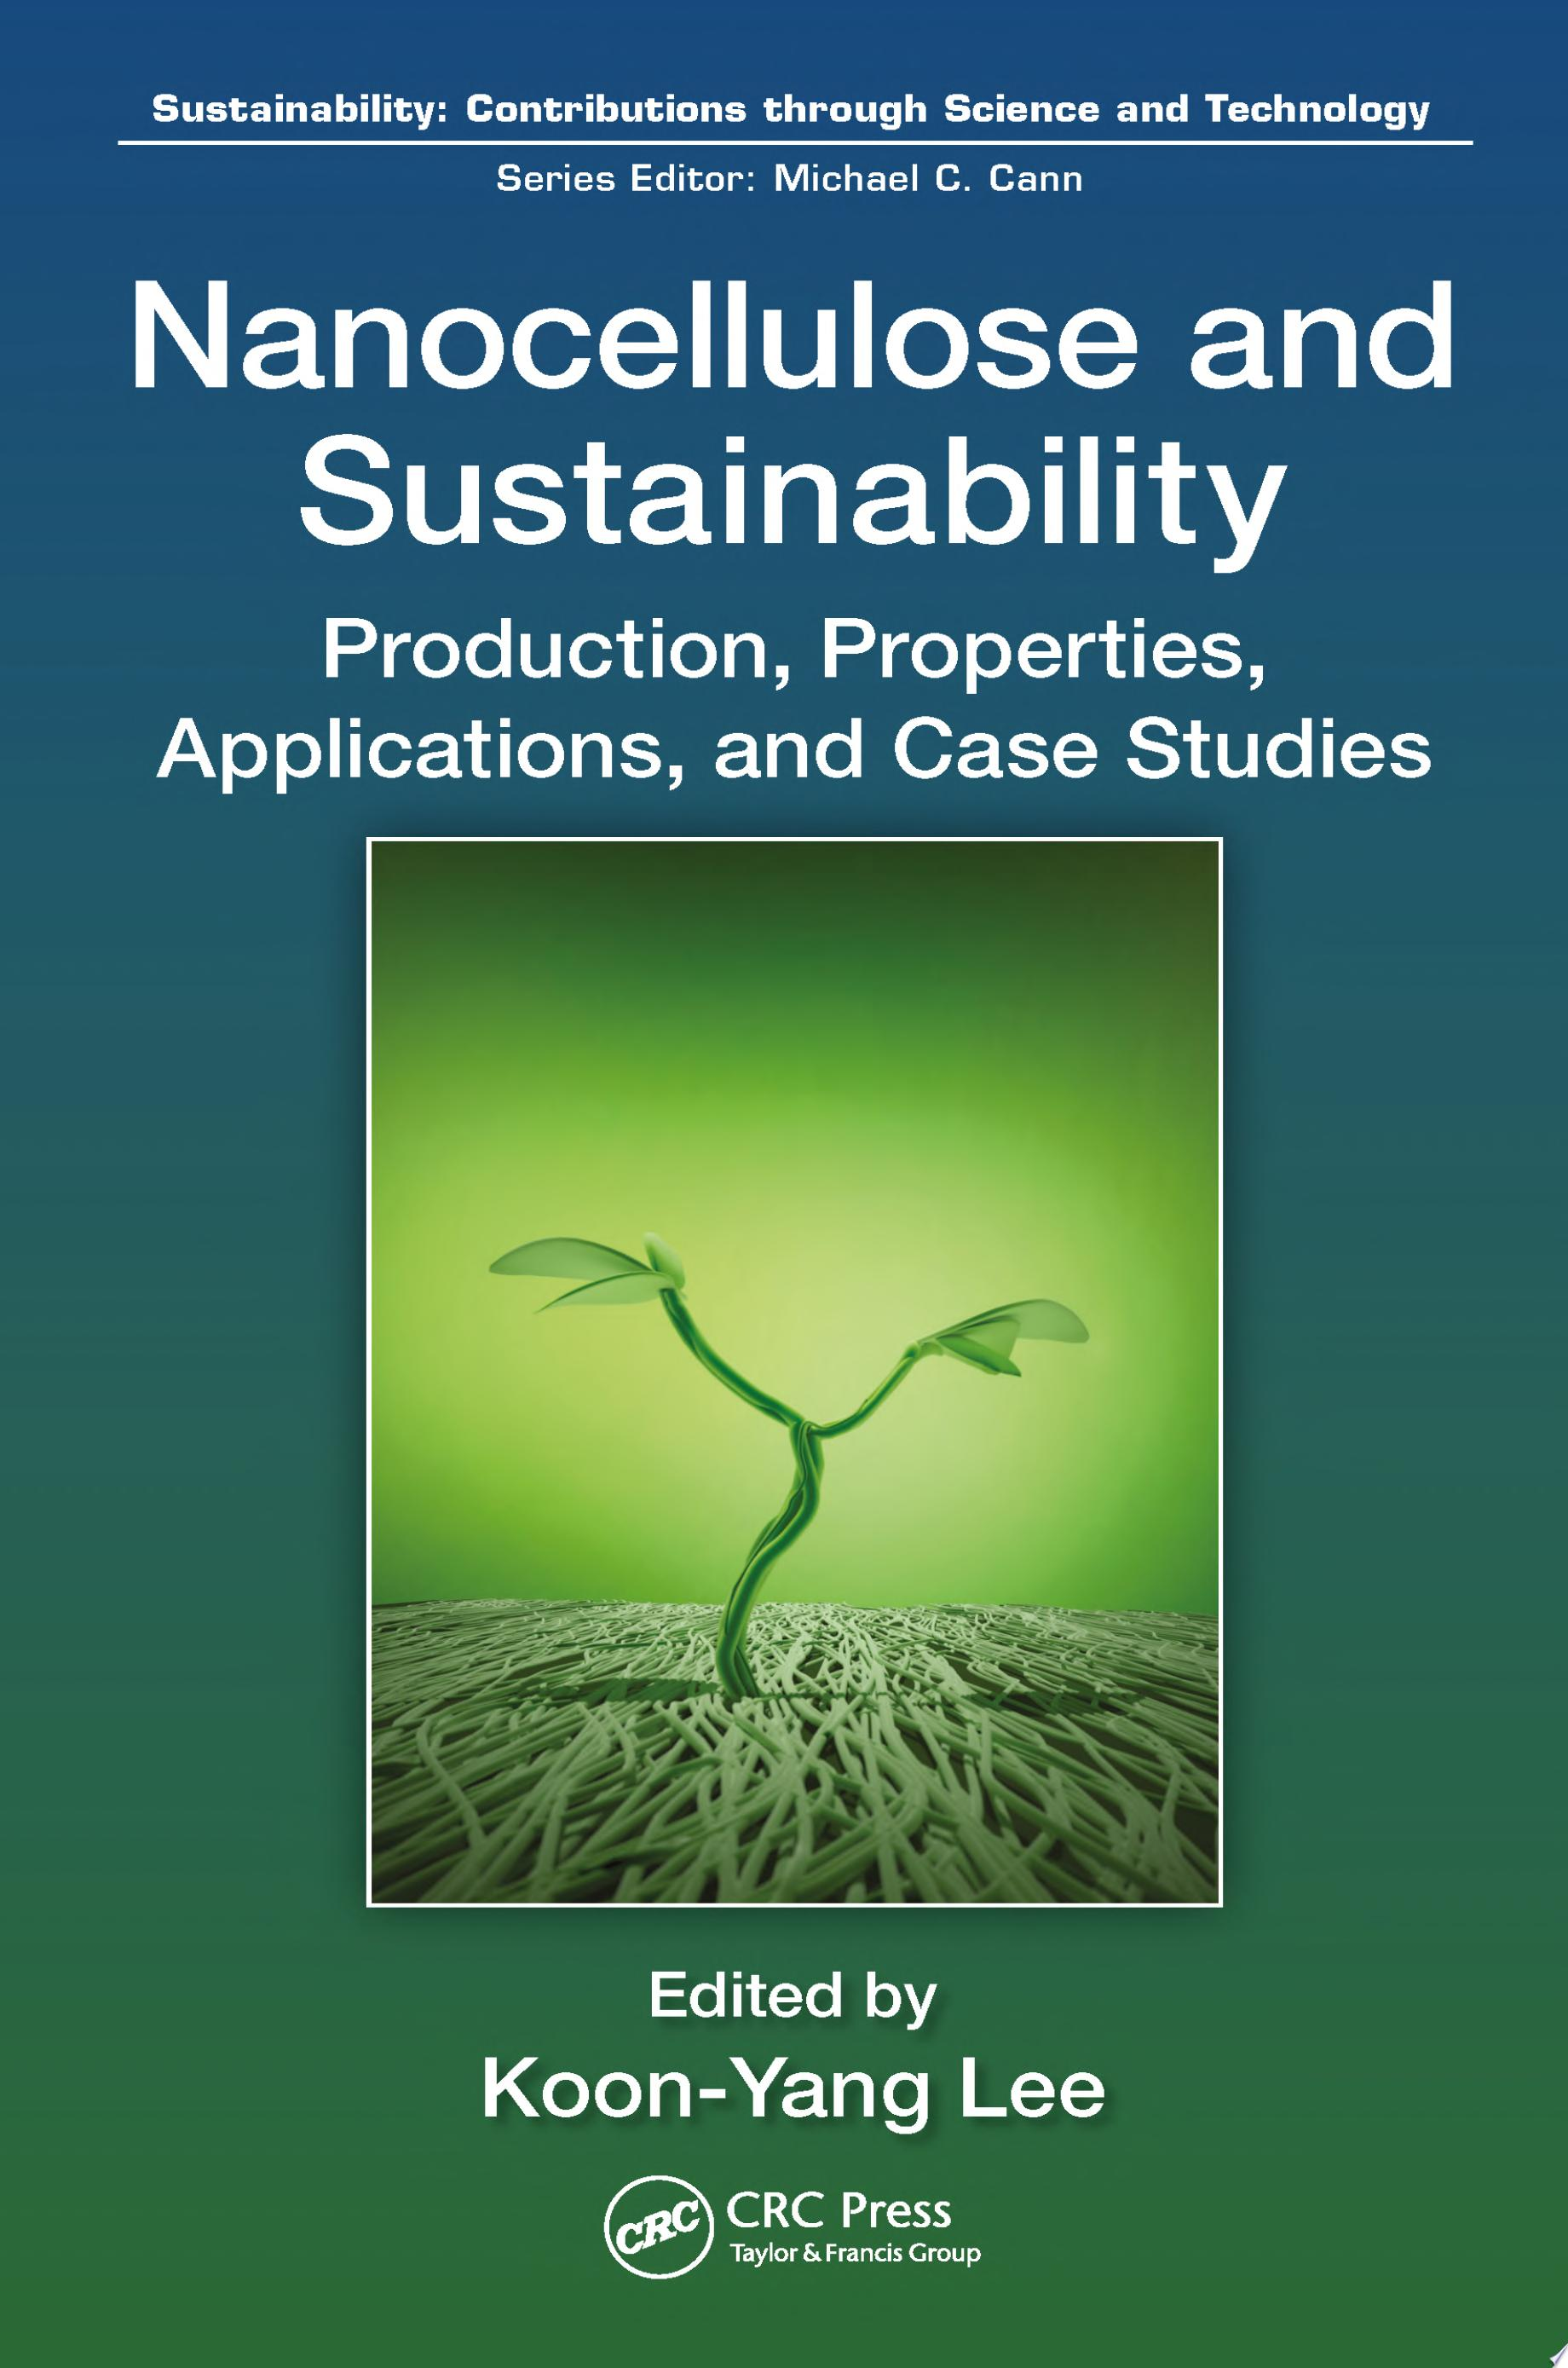 Nanocellulose and Sustainability